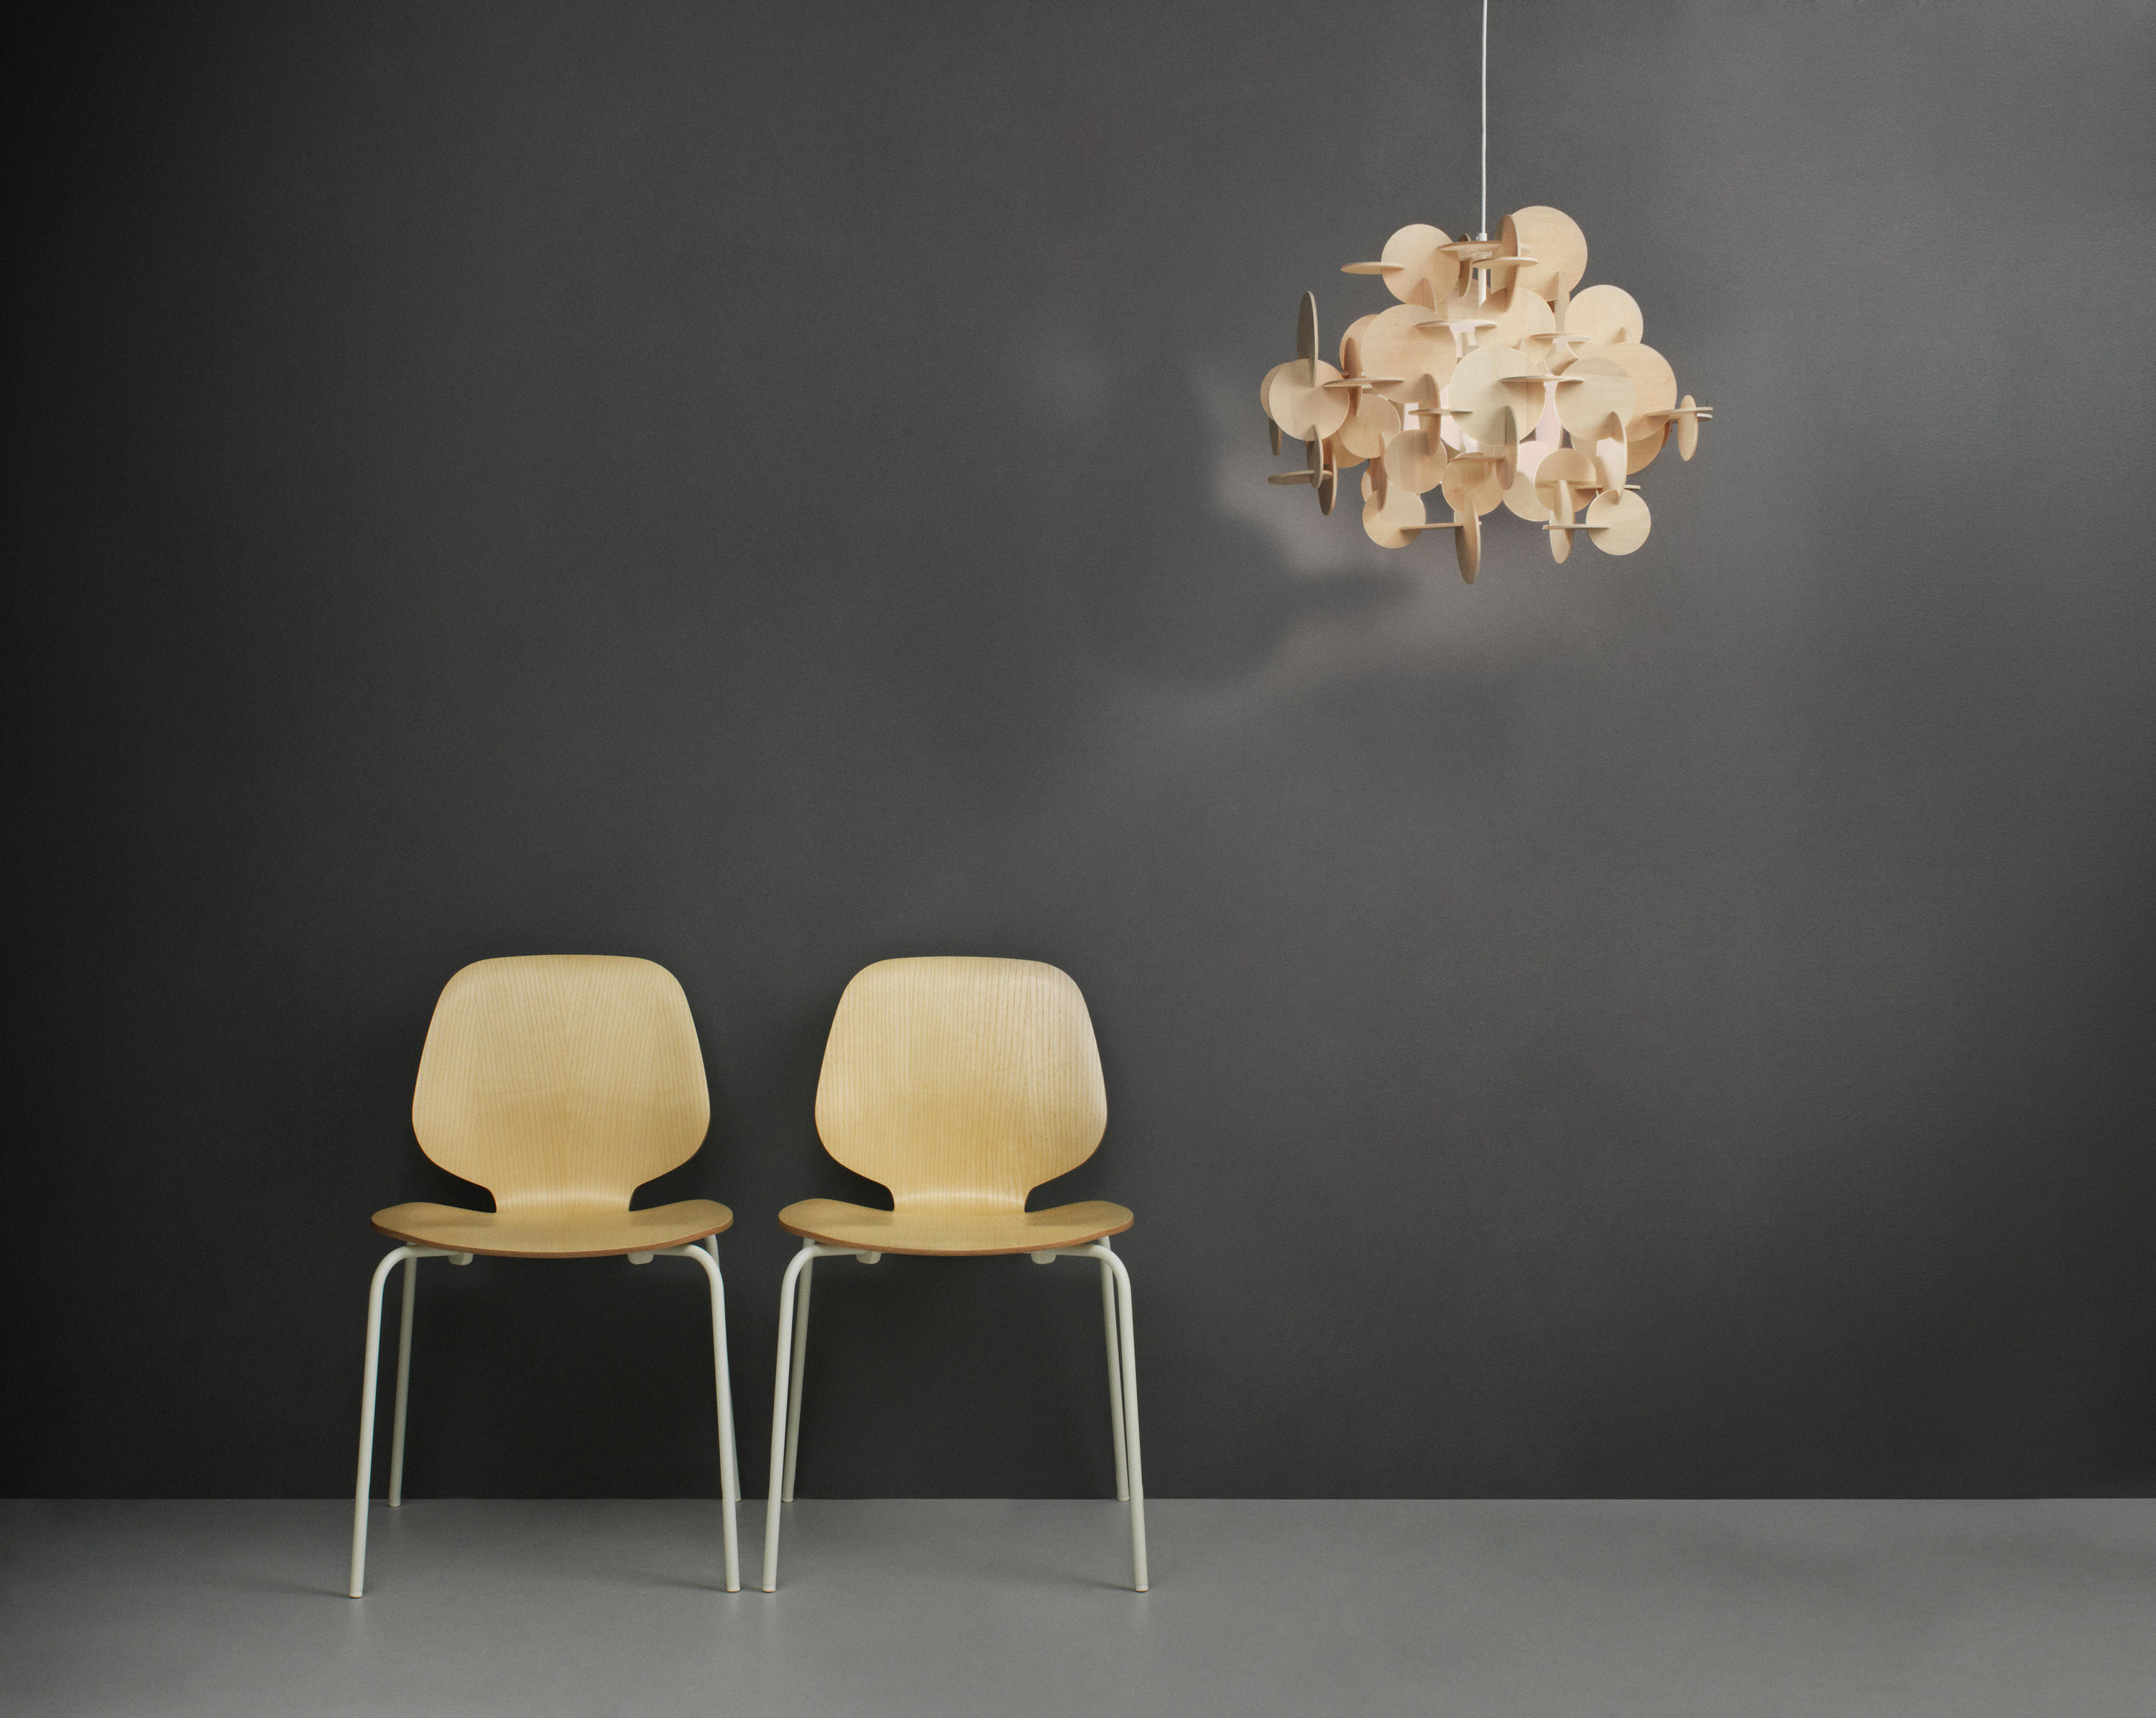 bau multi large general lighting from normann copenhagen. Black Bedroom Furniture Sets. Home Design Ideas